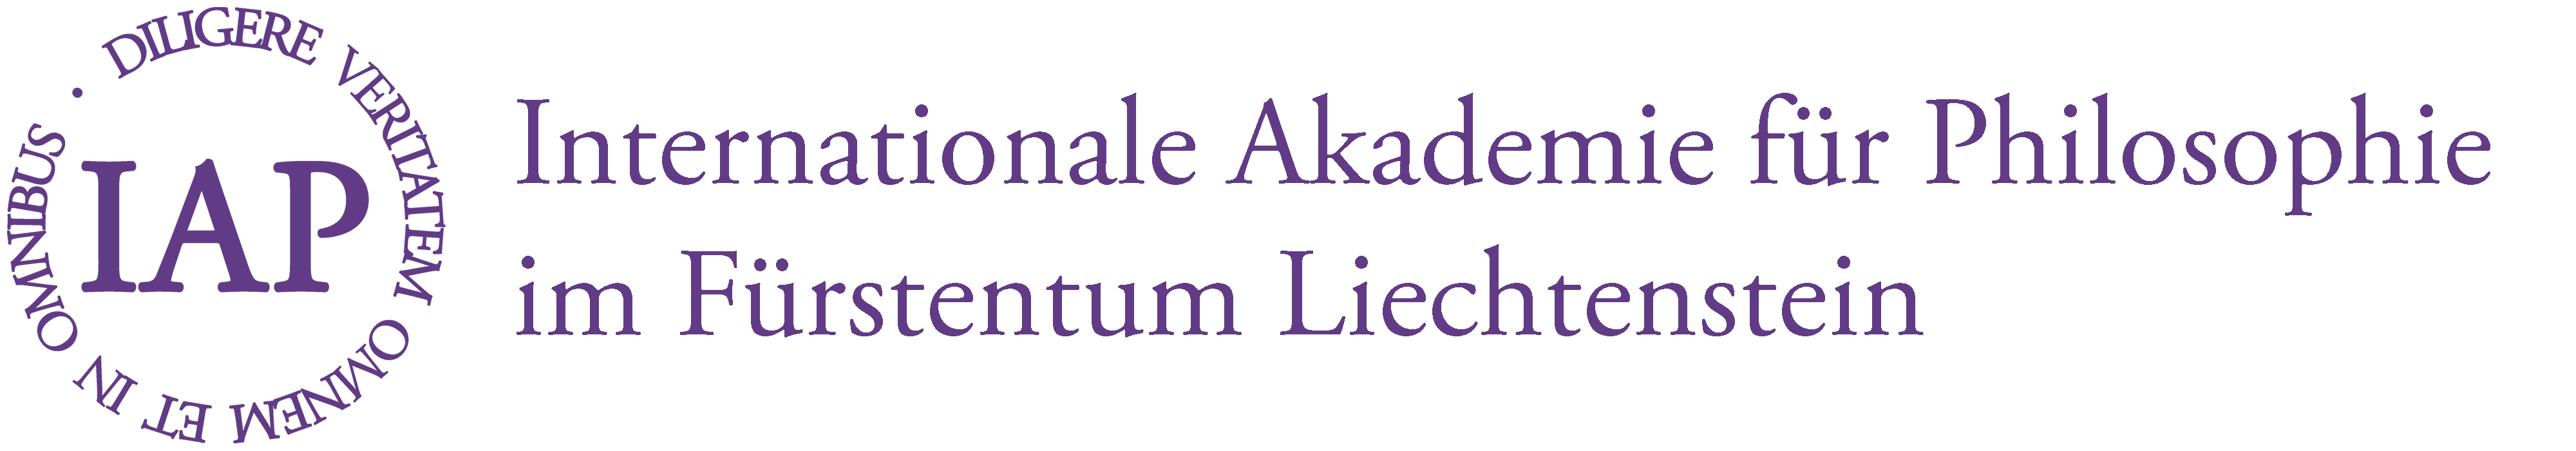 Internationale Akademie für Philosophie